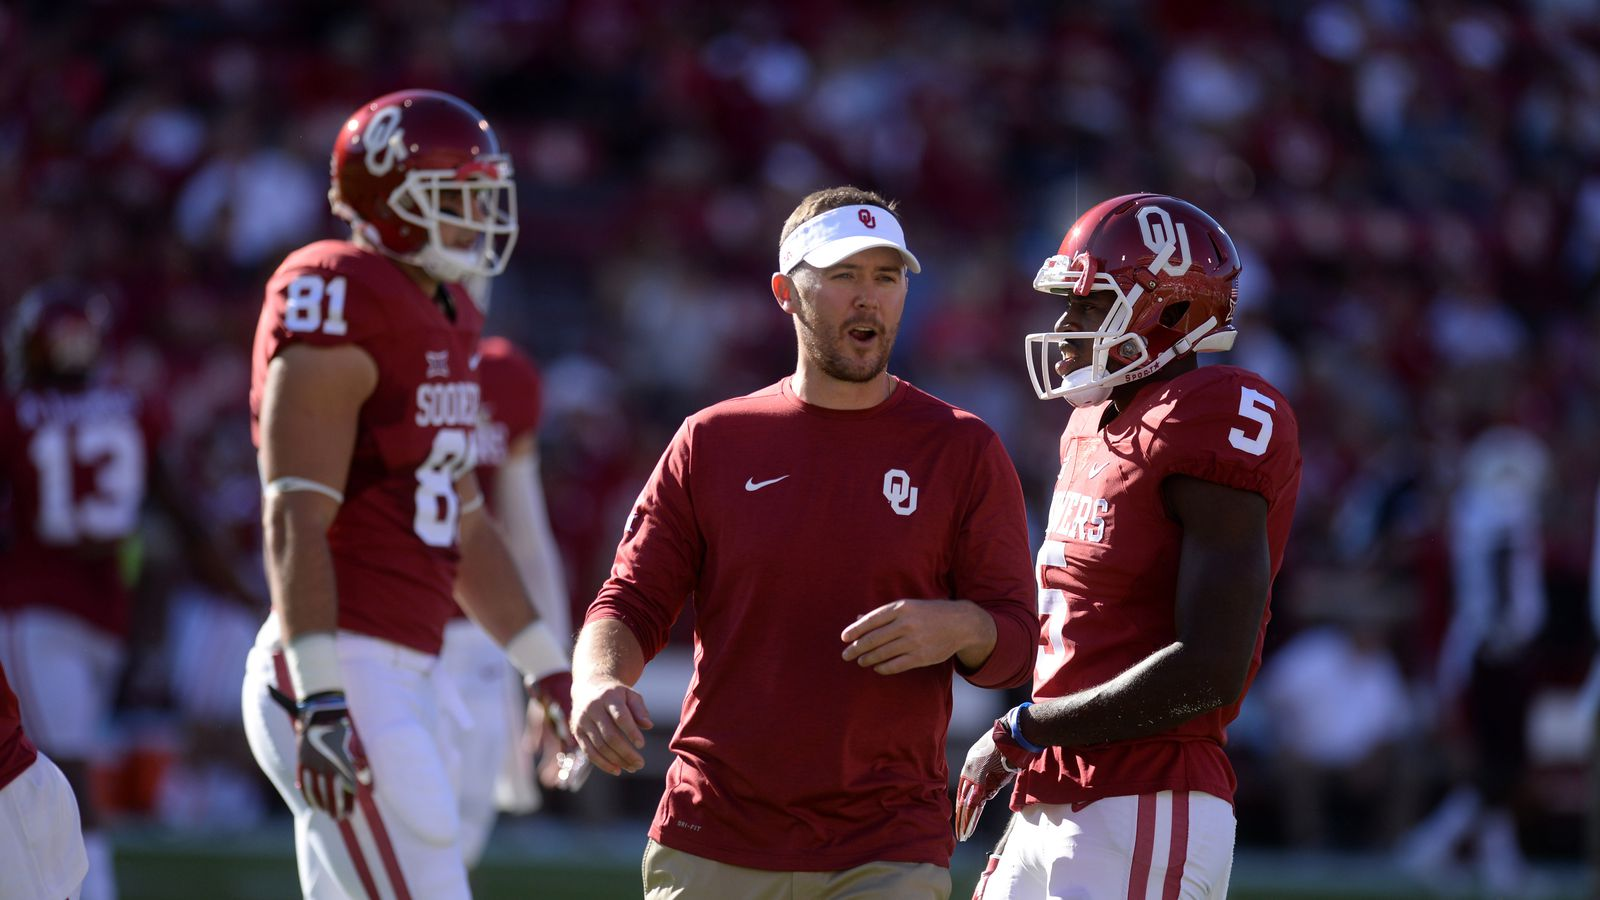 Lincoln Riley s first season as head coach of the Oklahoma Sooners went so well that it reportedly has earned him an extensionand a raise